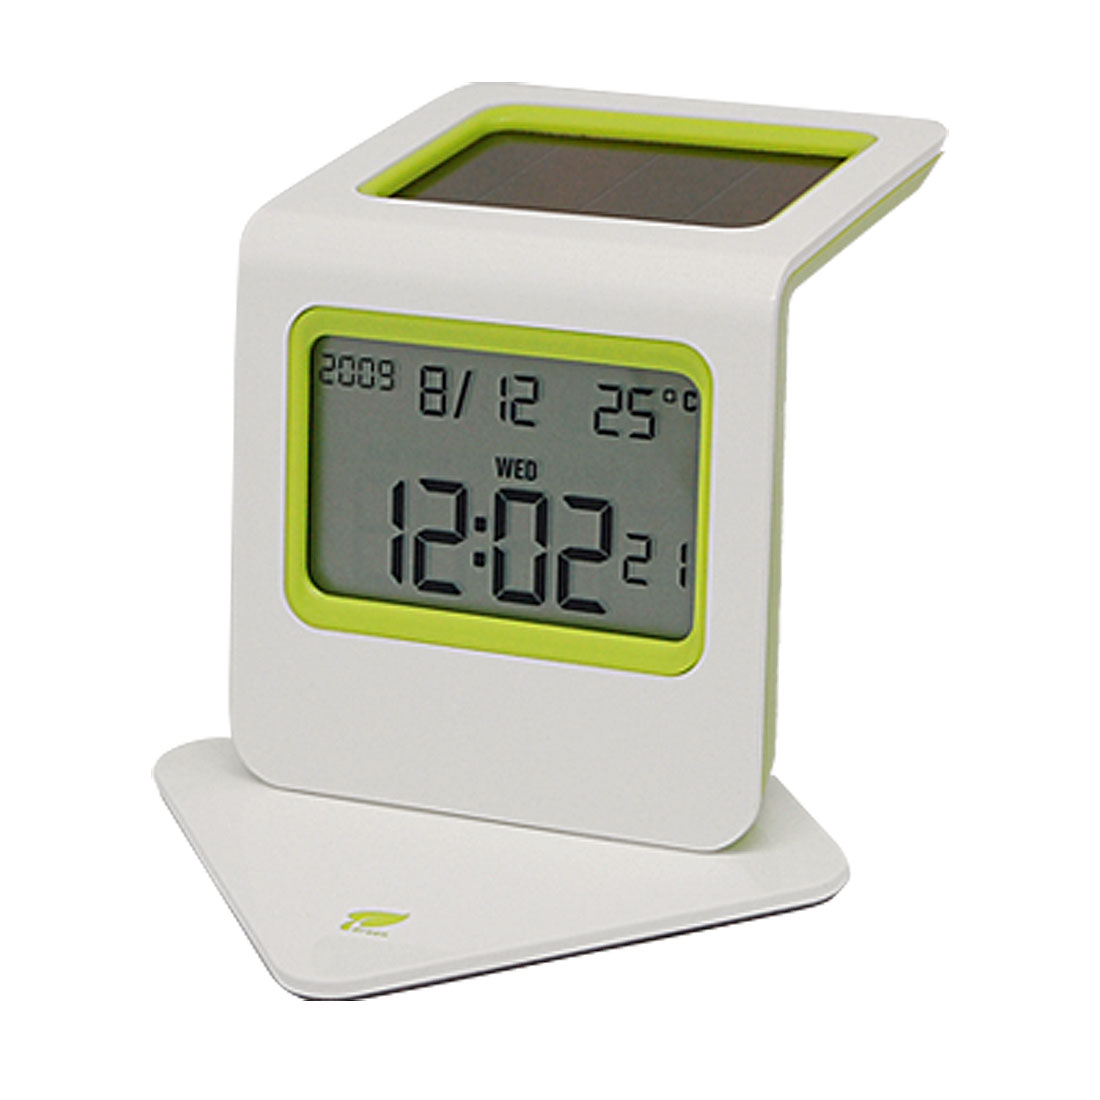 LCD Calendar Temperature Snooze Digital Alarm Clock